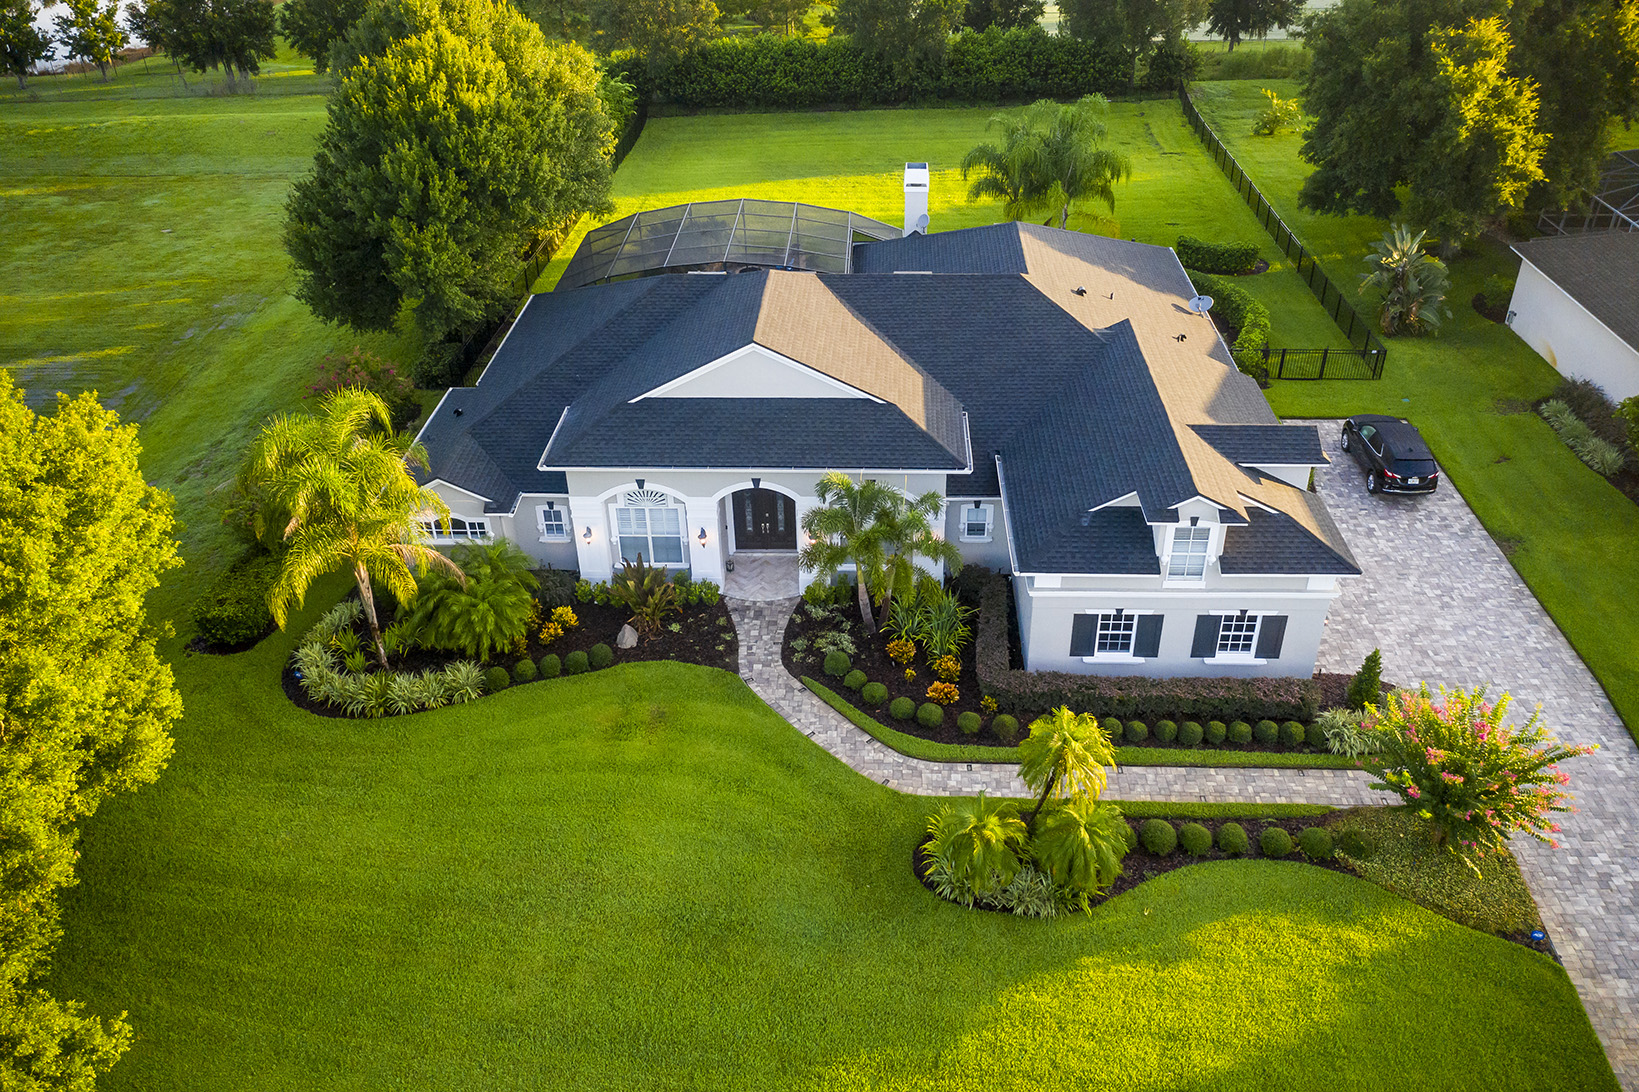 House with nice landscaping in Orlando Florida